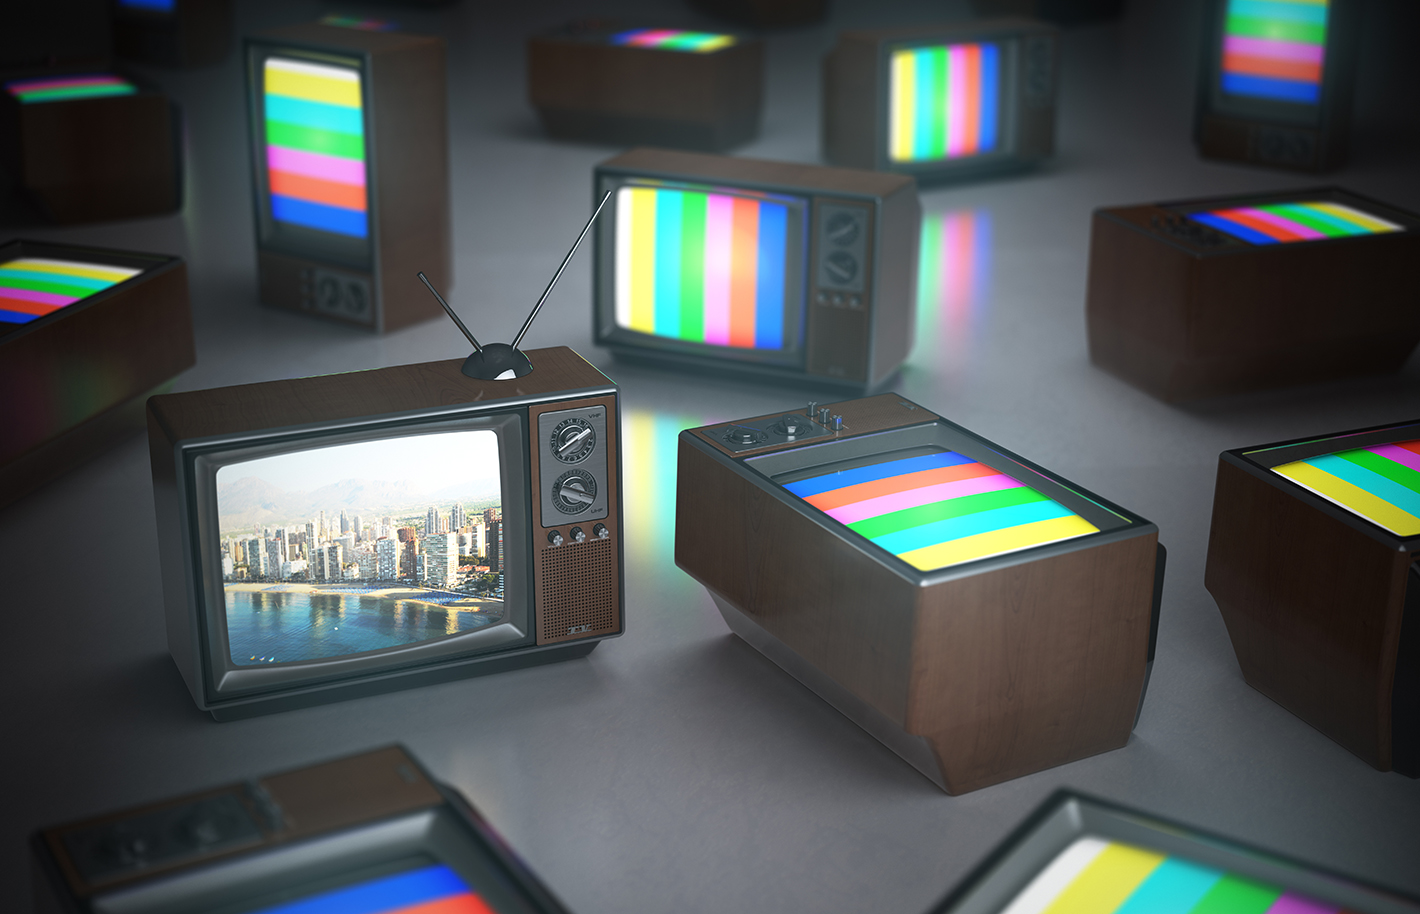 old school tvs with rainbow colour screens